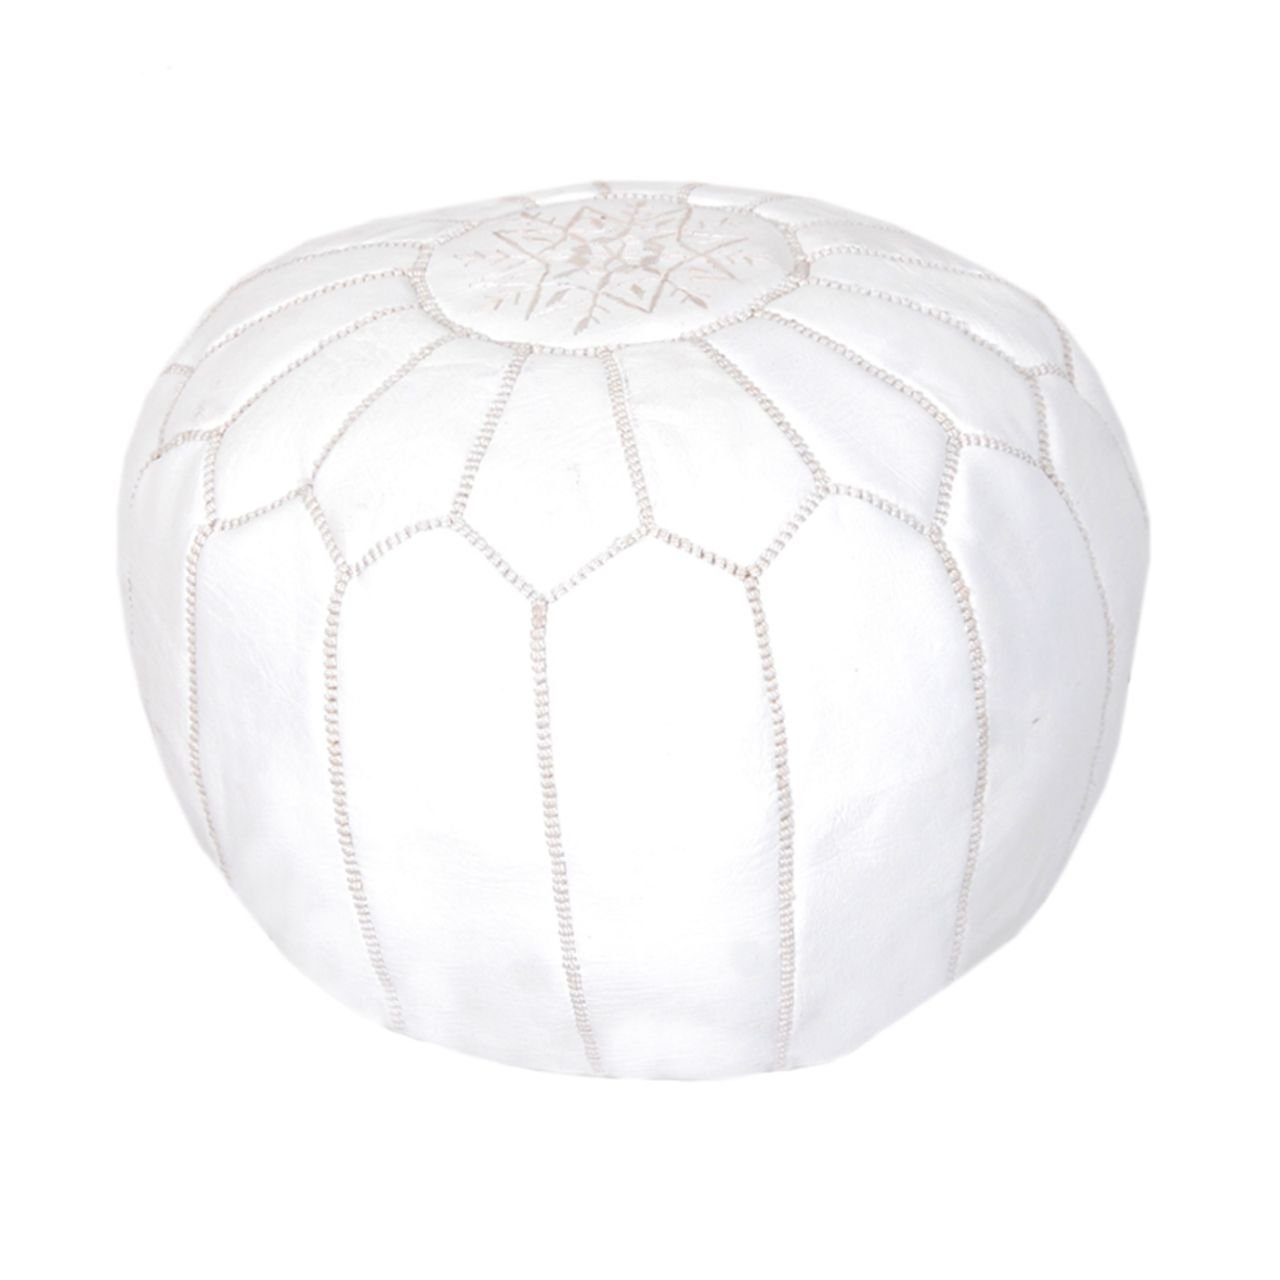 Moroccan Pouf Ottoman Footstool (Leather) Genuine Hand-Stitched Seating | Unstuffed | Living Room, Bedroom, Sitting Area | White | Exclusive Designs